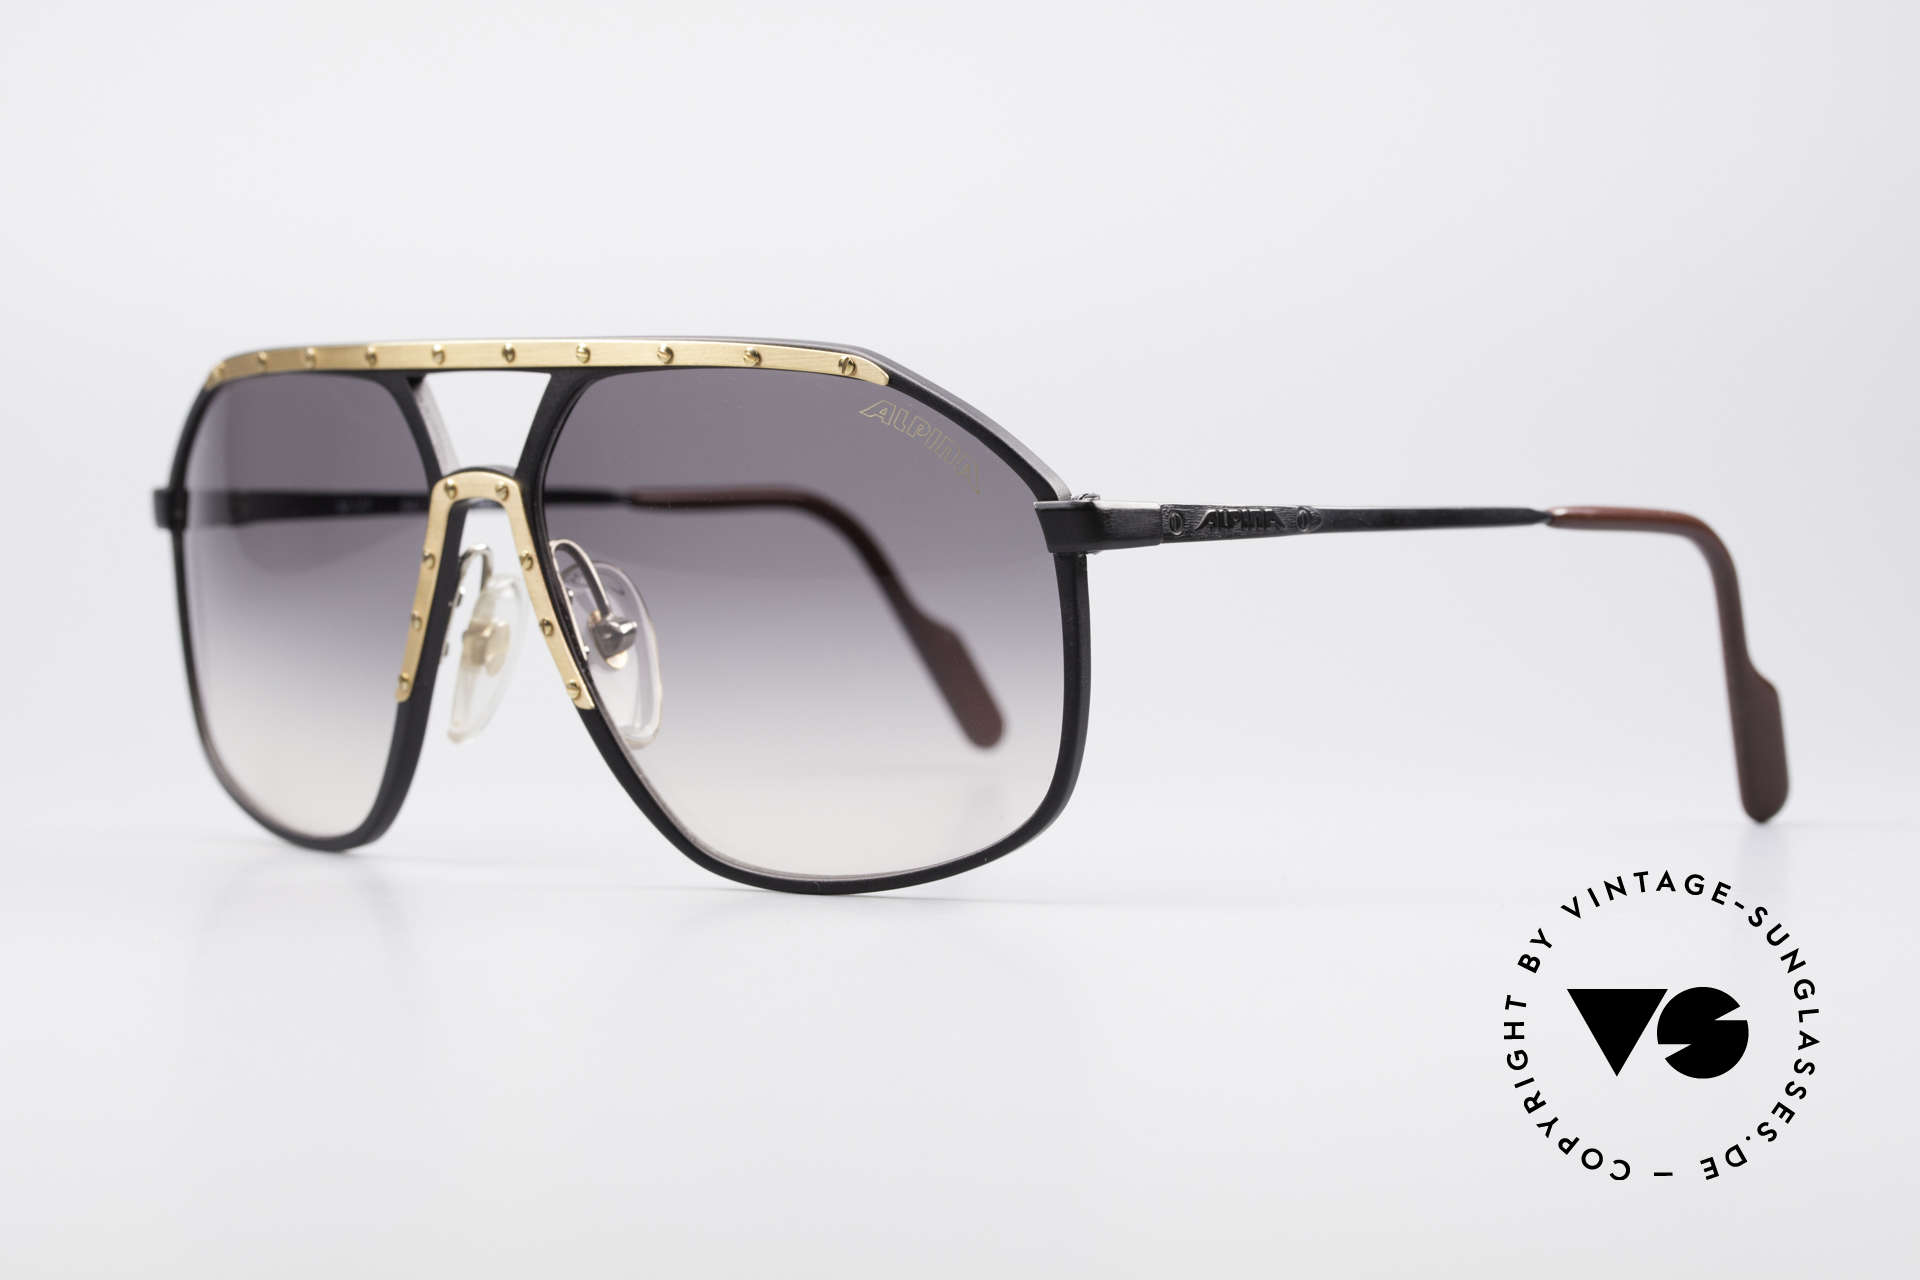 Alpina M1/7 Iconic Vintage Sunglasses, a hybrid between the 80's Alpina classics M1 and M6, Made for Men